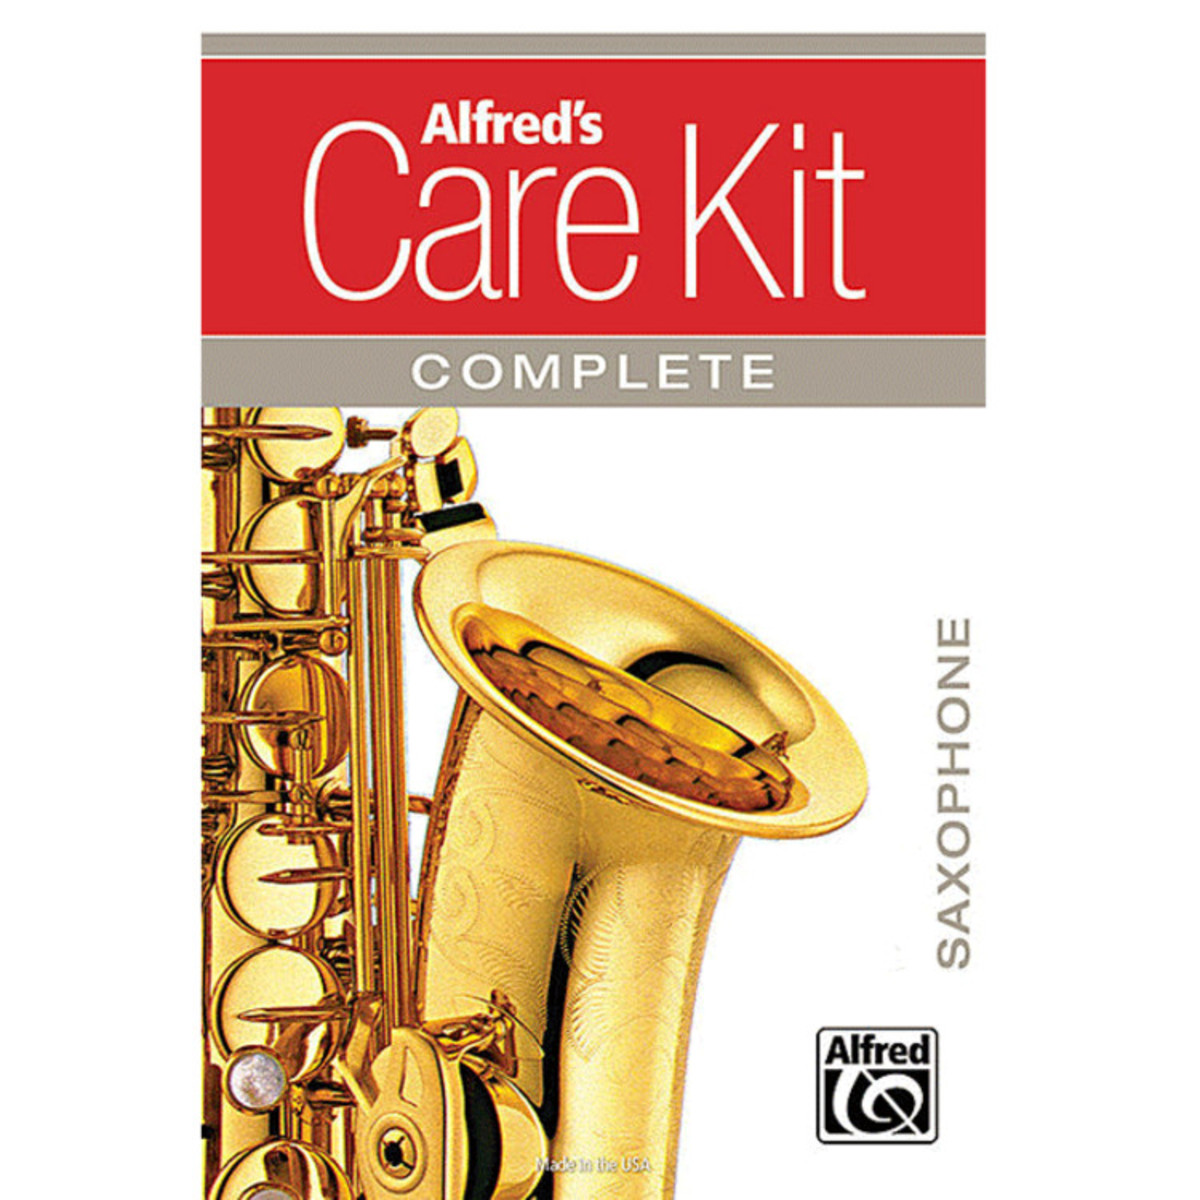 Image of Alfreds Complete Alto Saxophone Care Kit